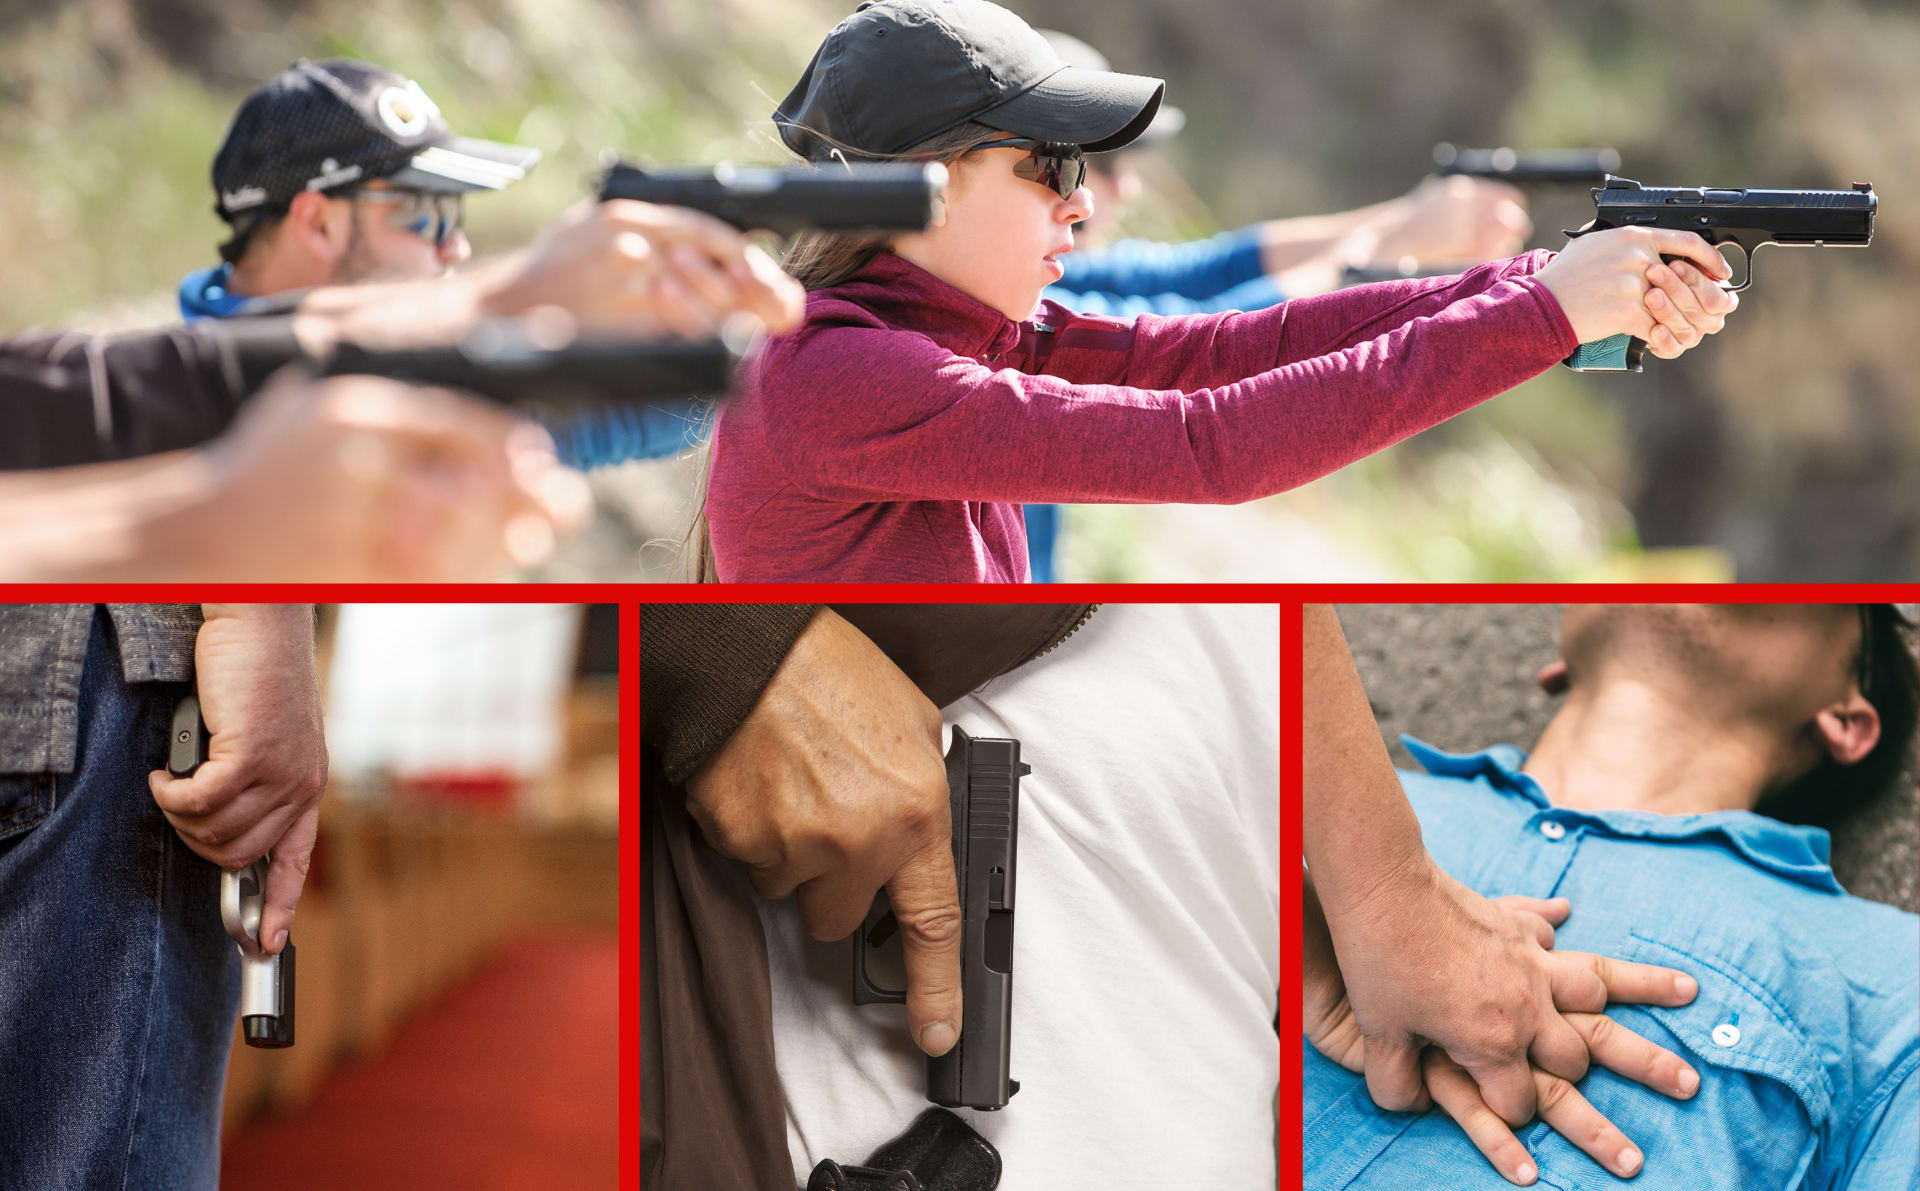 Concealed Carry Classes, CPR Certification, and Firearms Training in Jonesboro